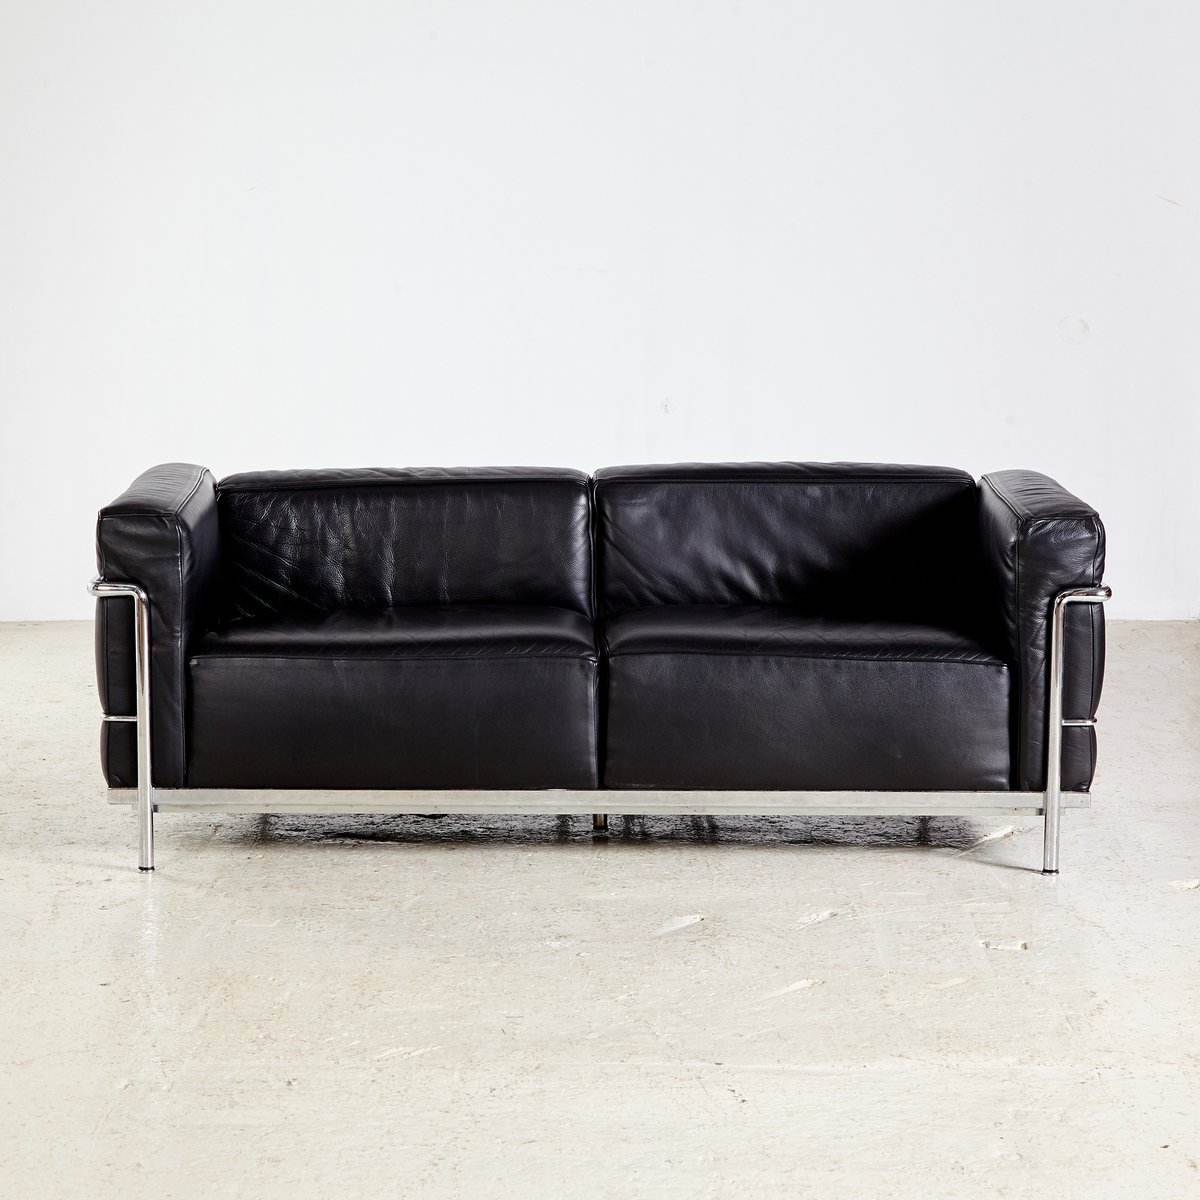 Lc3 Sofa By Le Corbusier Pierre Jeanneret Charlotte Perriand For Cina 1928